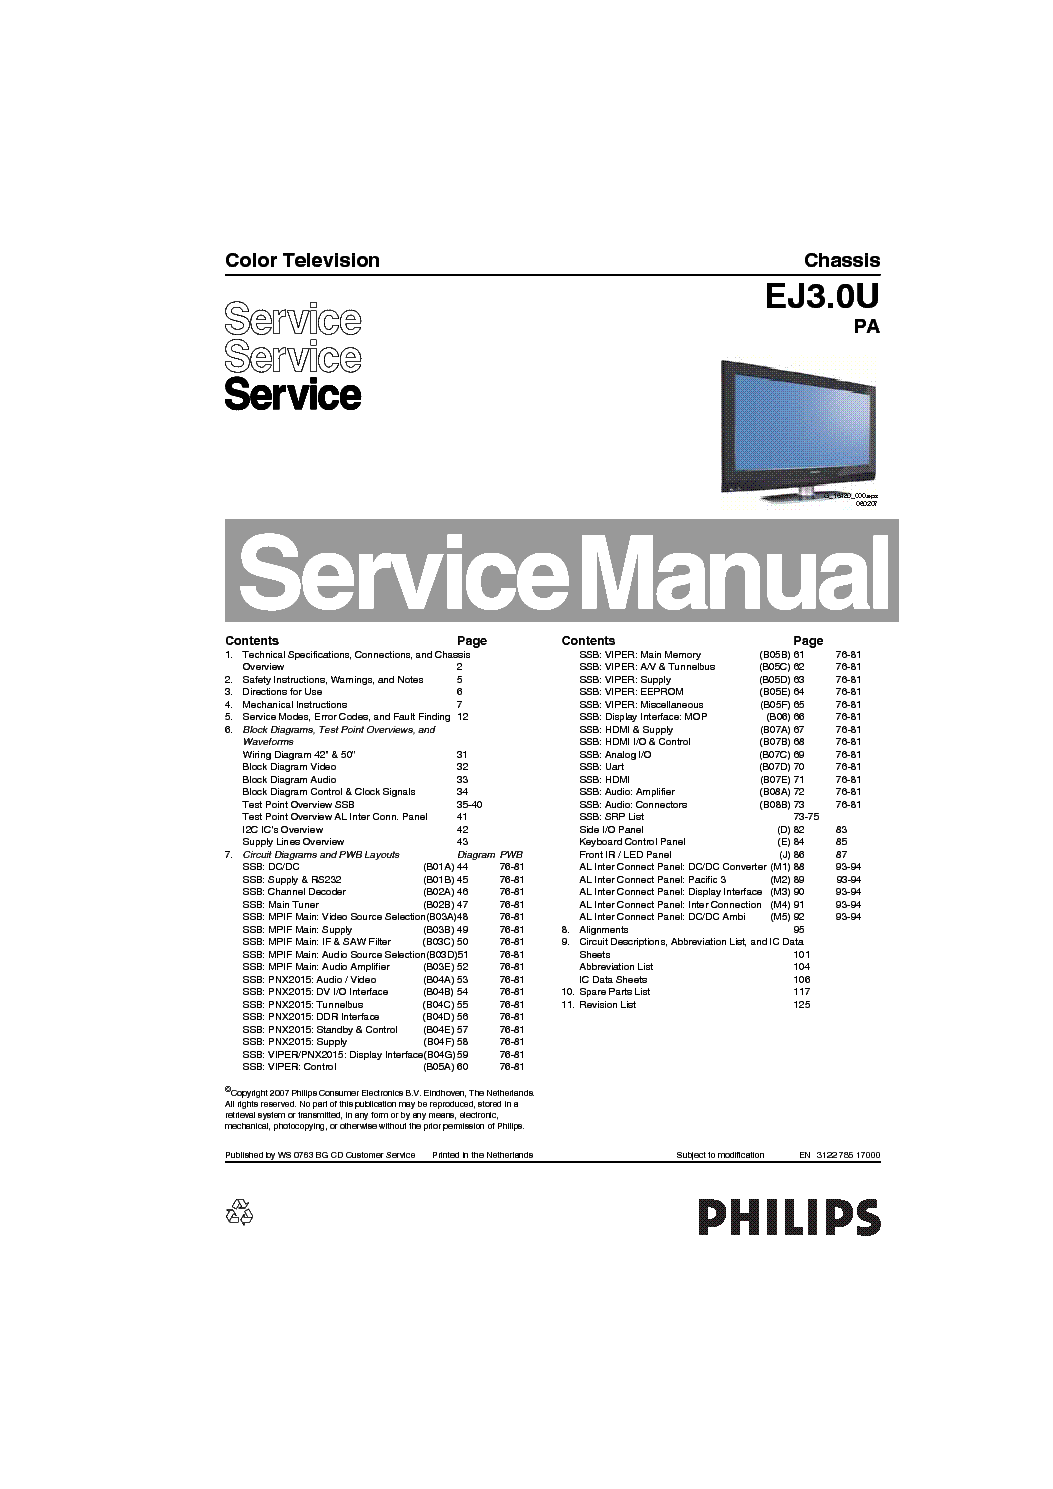 PHILIPS CHASSIS EJ3.0U-PA SM Service Manual download